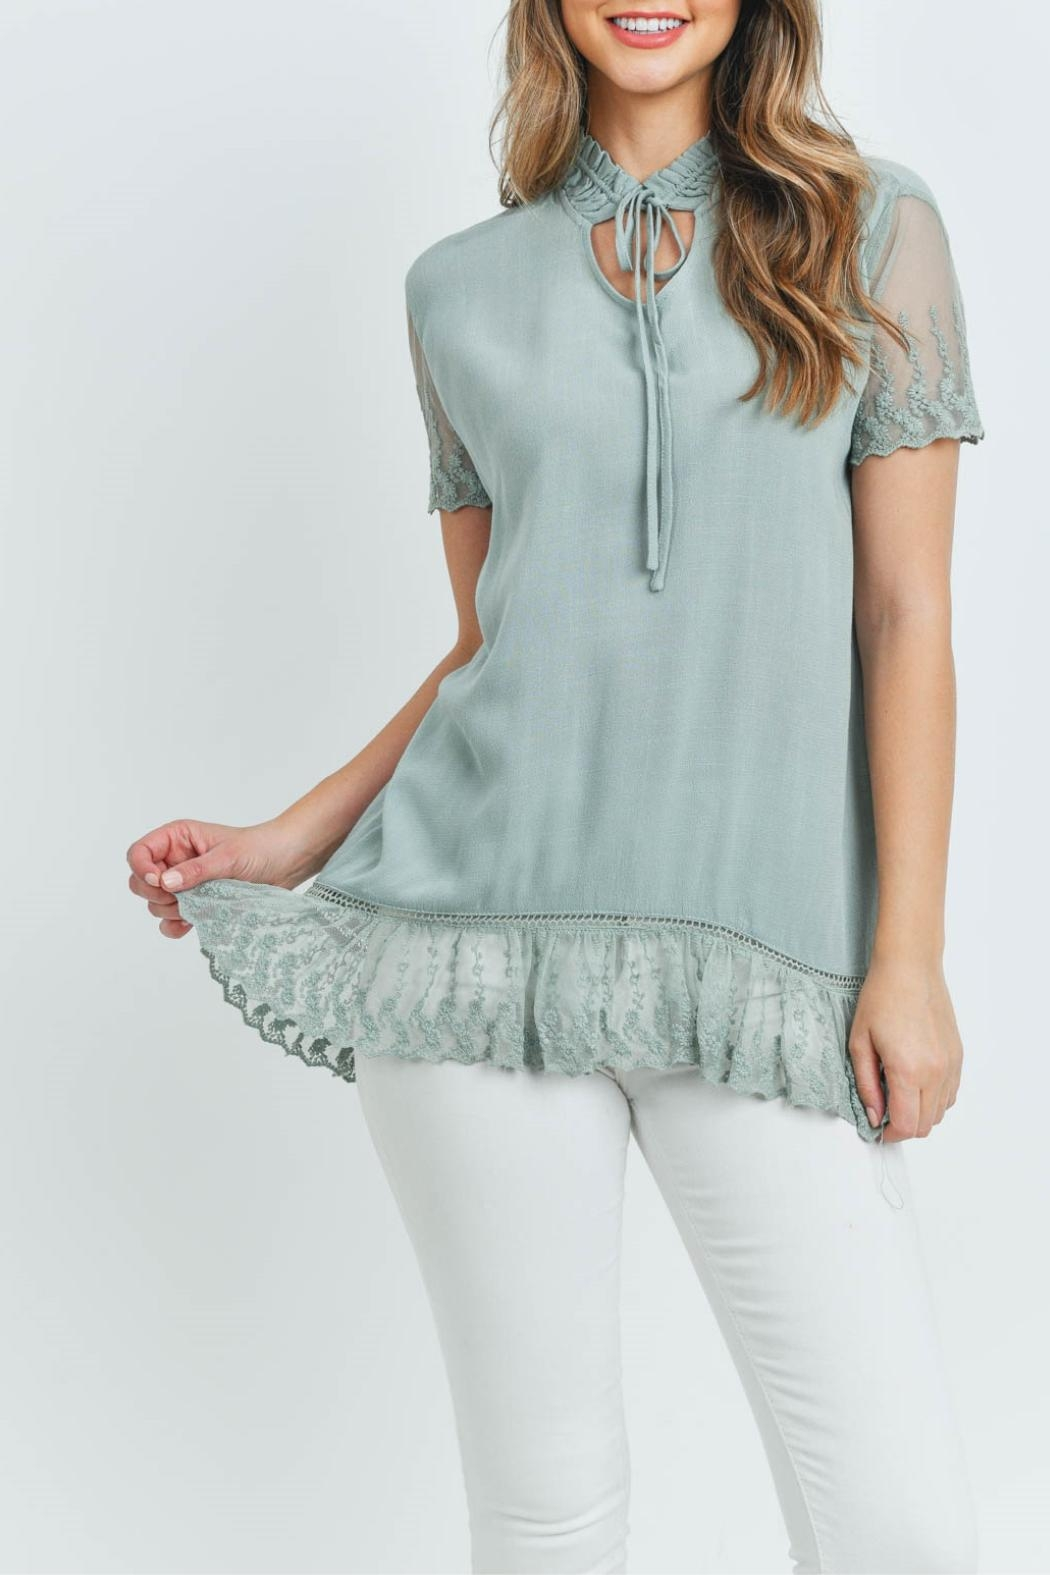 L Love Sage Lace Top - Main Image